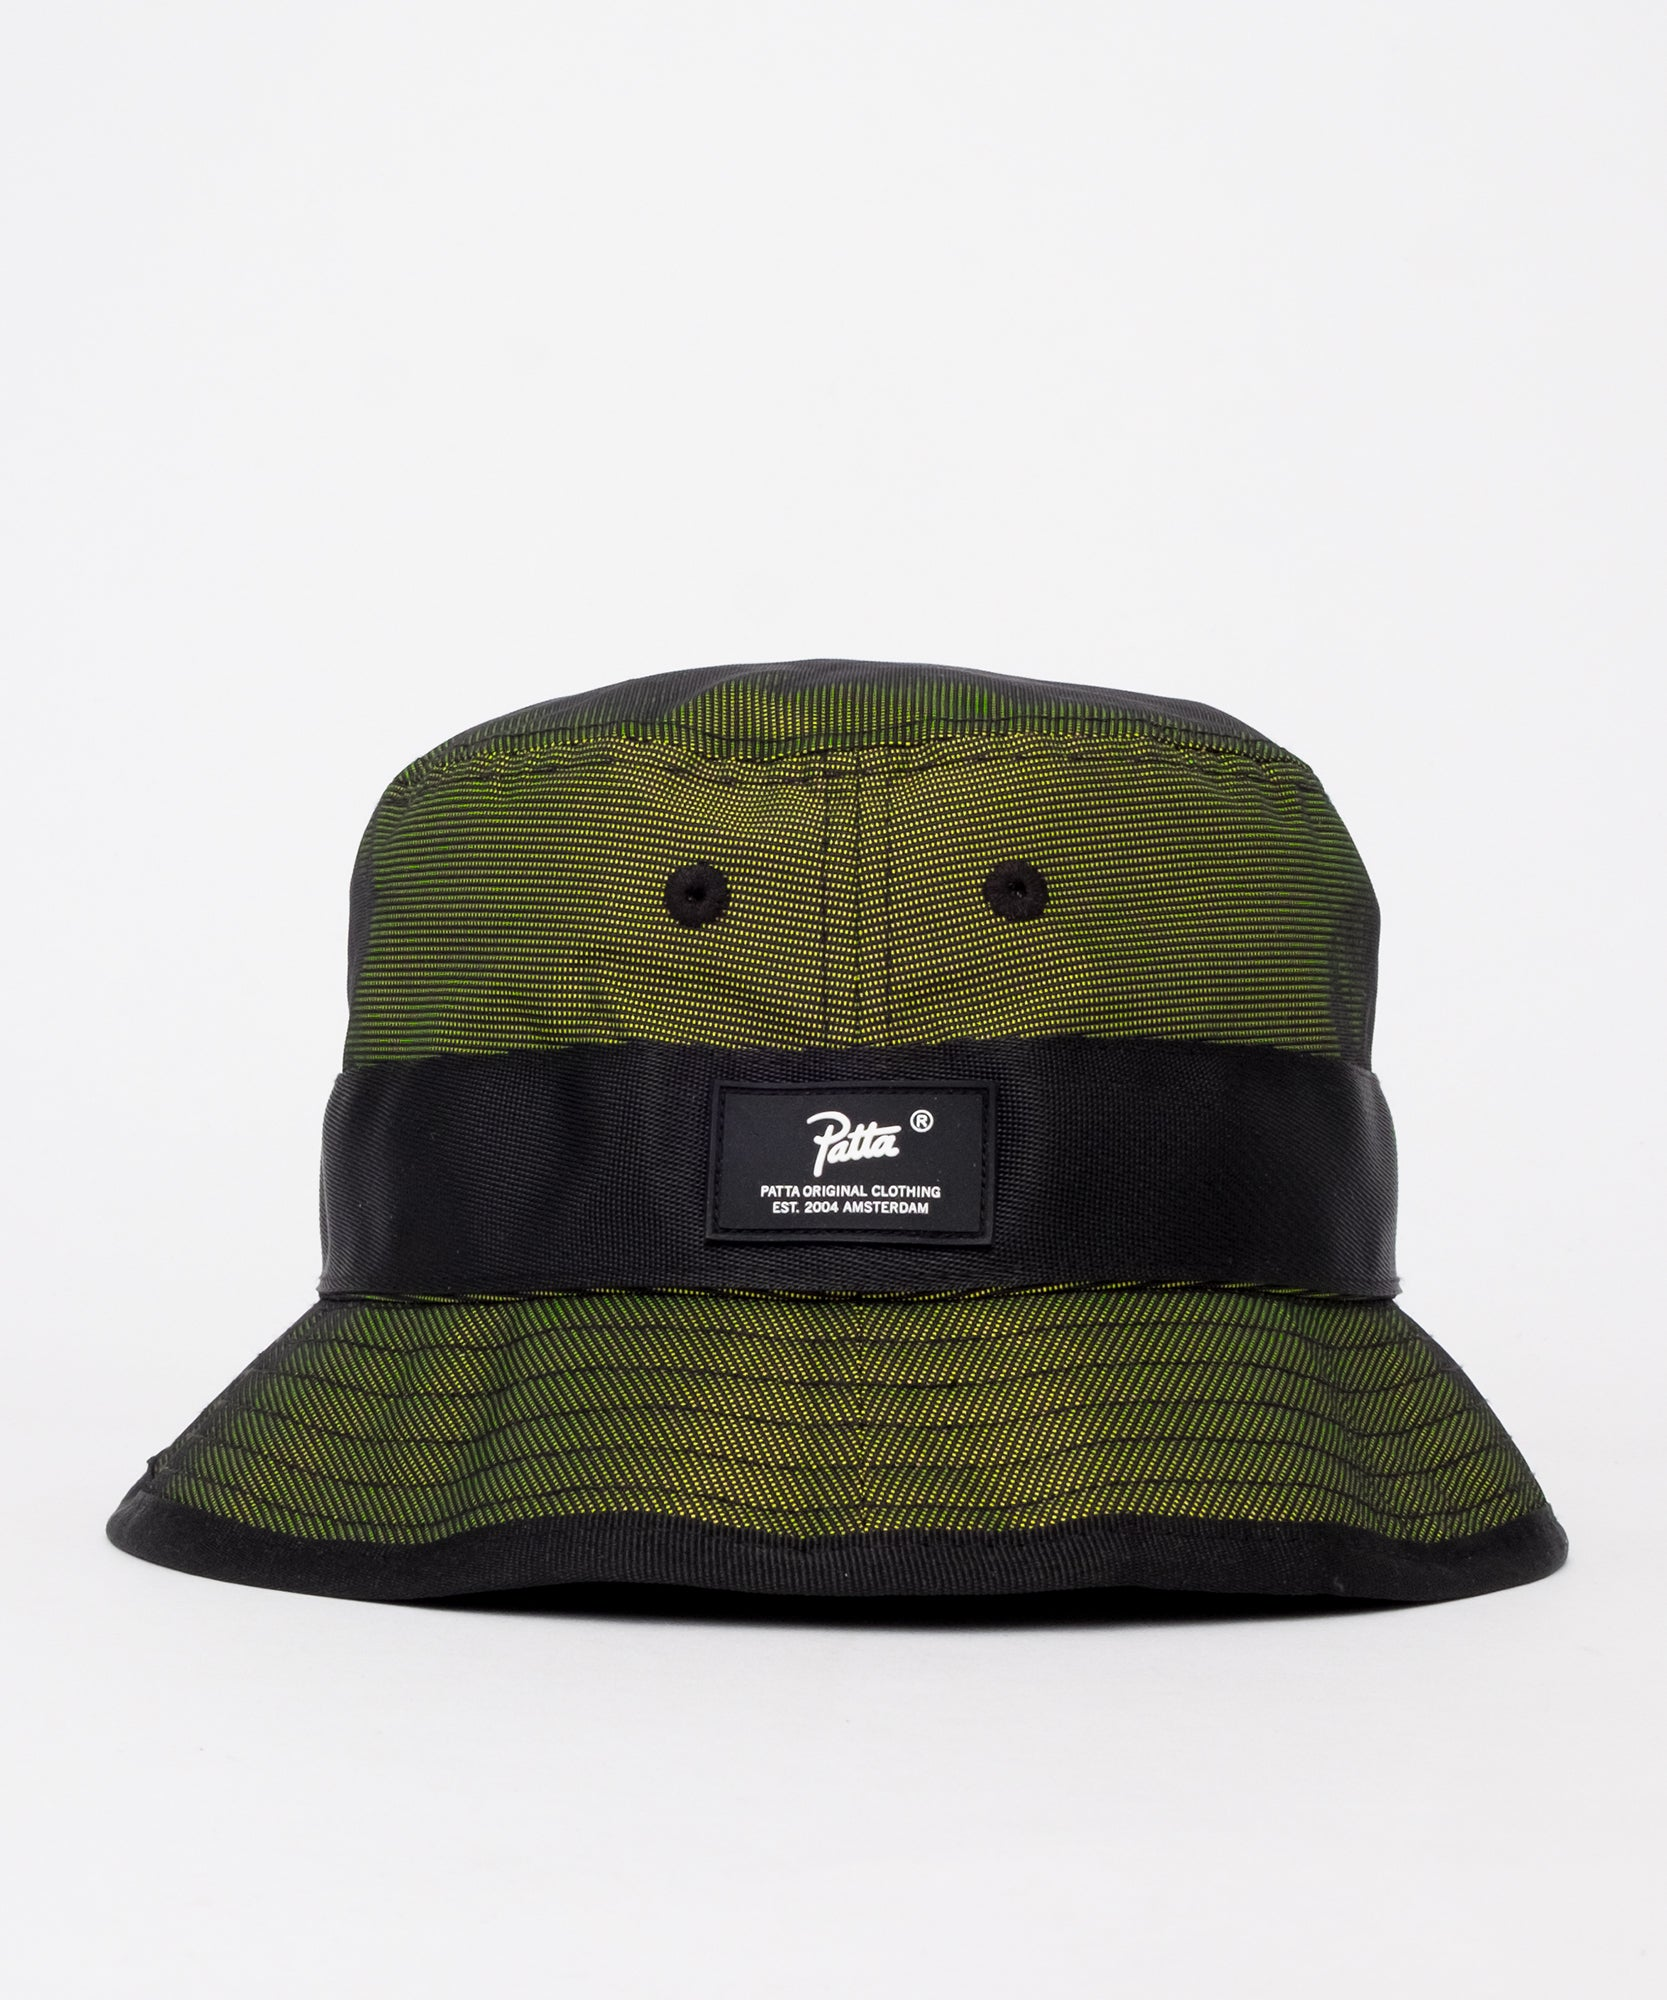 Patta Hi-Vis Bucket Hat (Black/Safety Yellow)